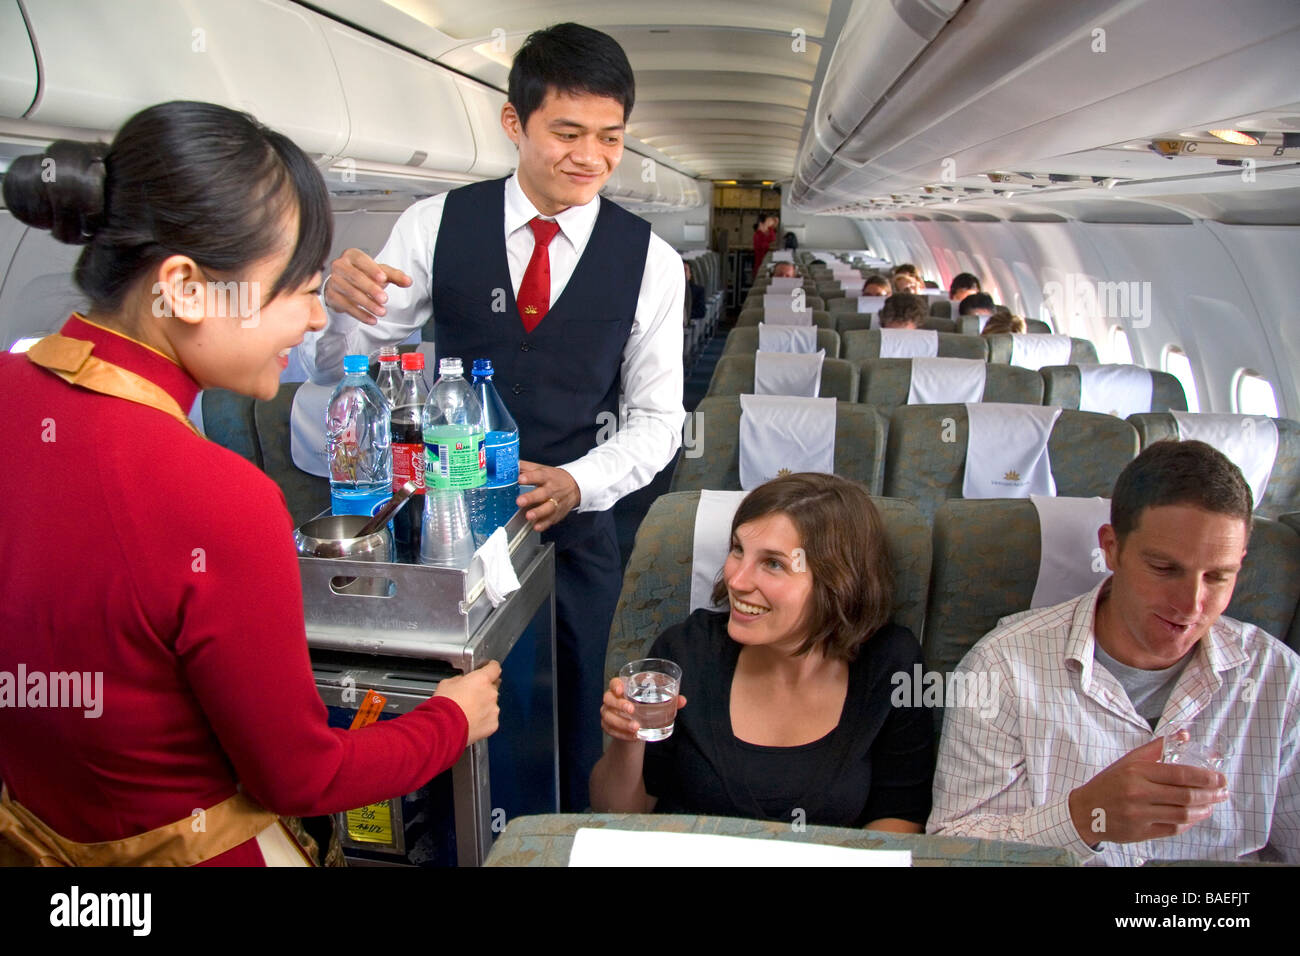 flight attendants stock photos flight attendants stock images flight attendants serve beverages to passengers on a viet se airliner stock image